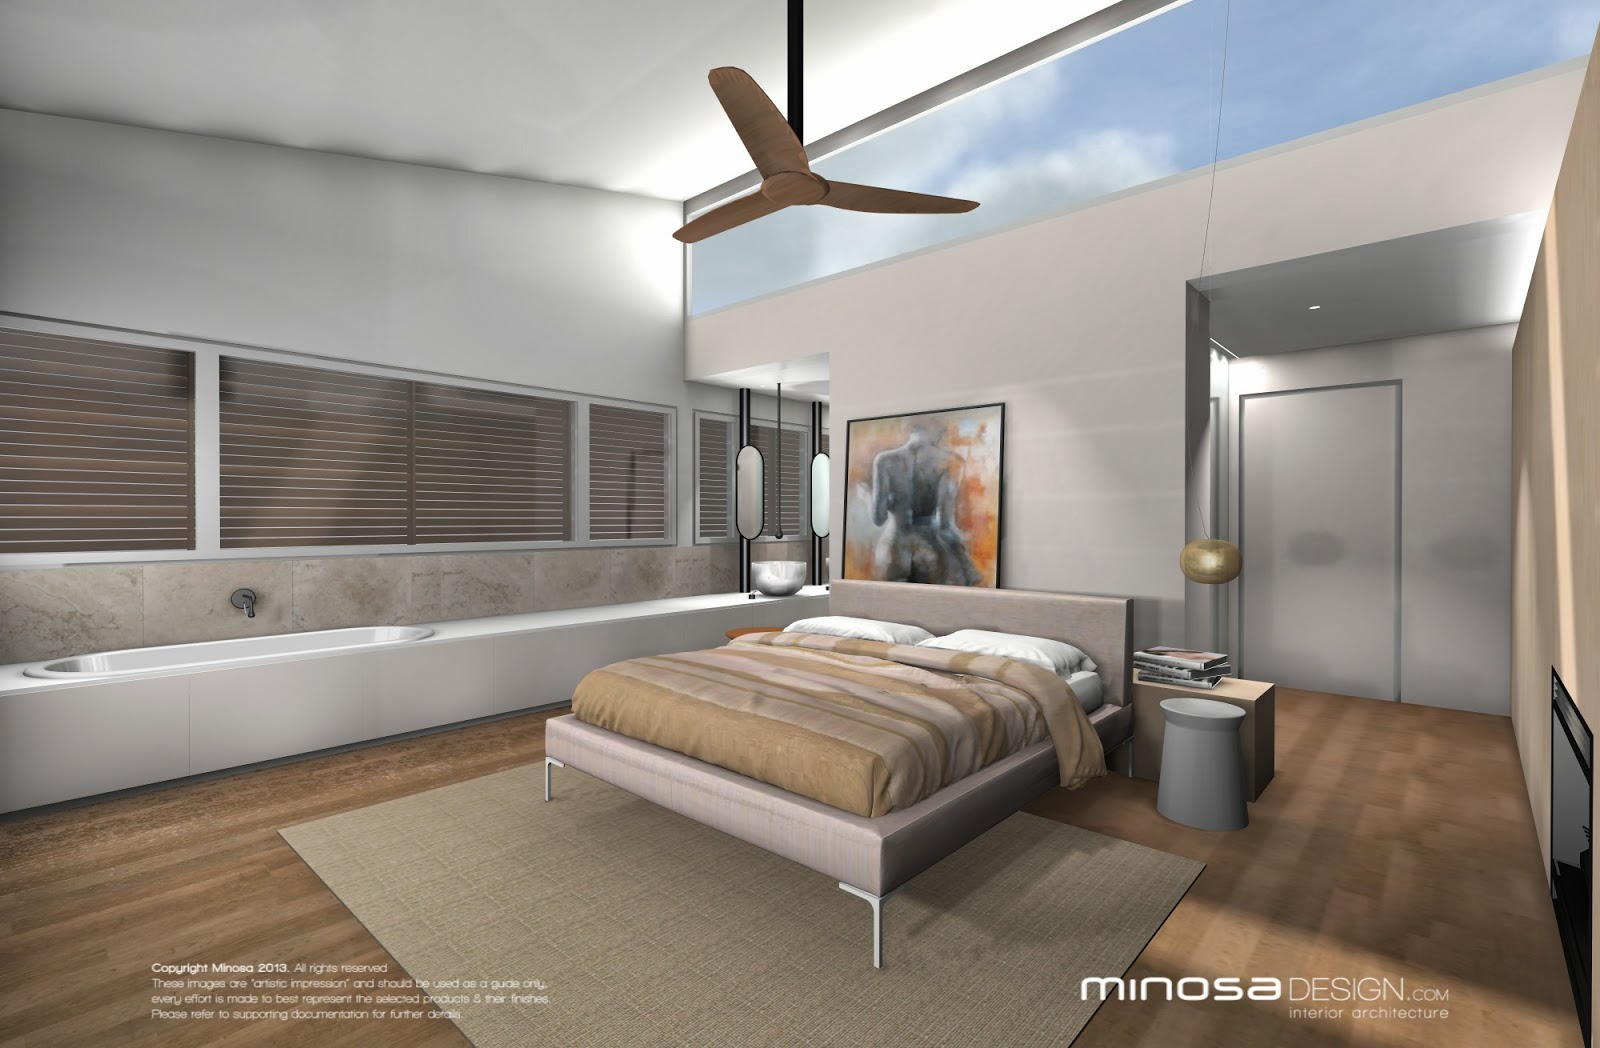 Minosa new minosa bathroom design resort style ensuite - Showers Are Becoming Larger And Large Enough For Two To Share The Water Is Coming From Two Sources One From The Ceiling Like Urban Rain And The Other From